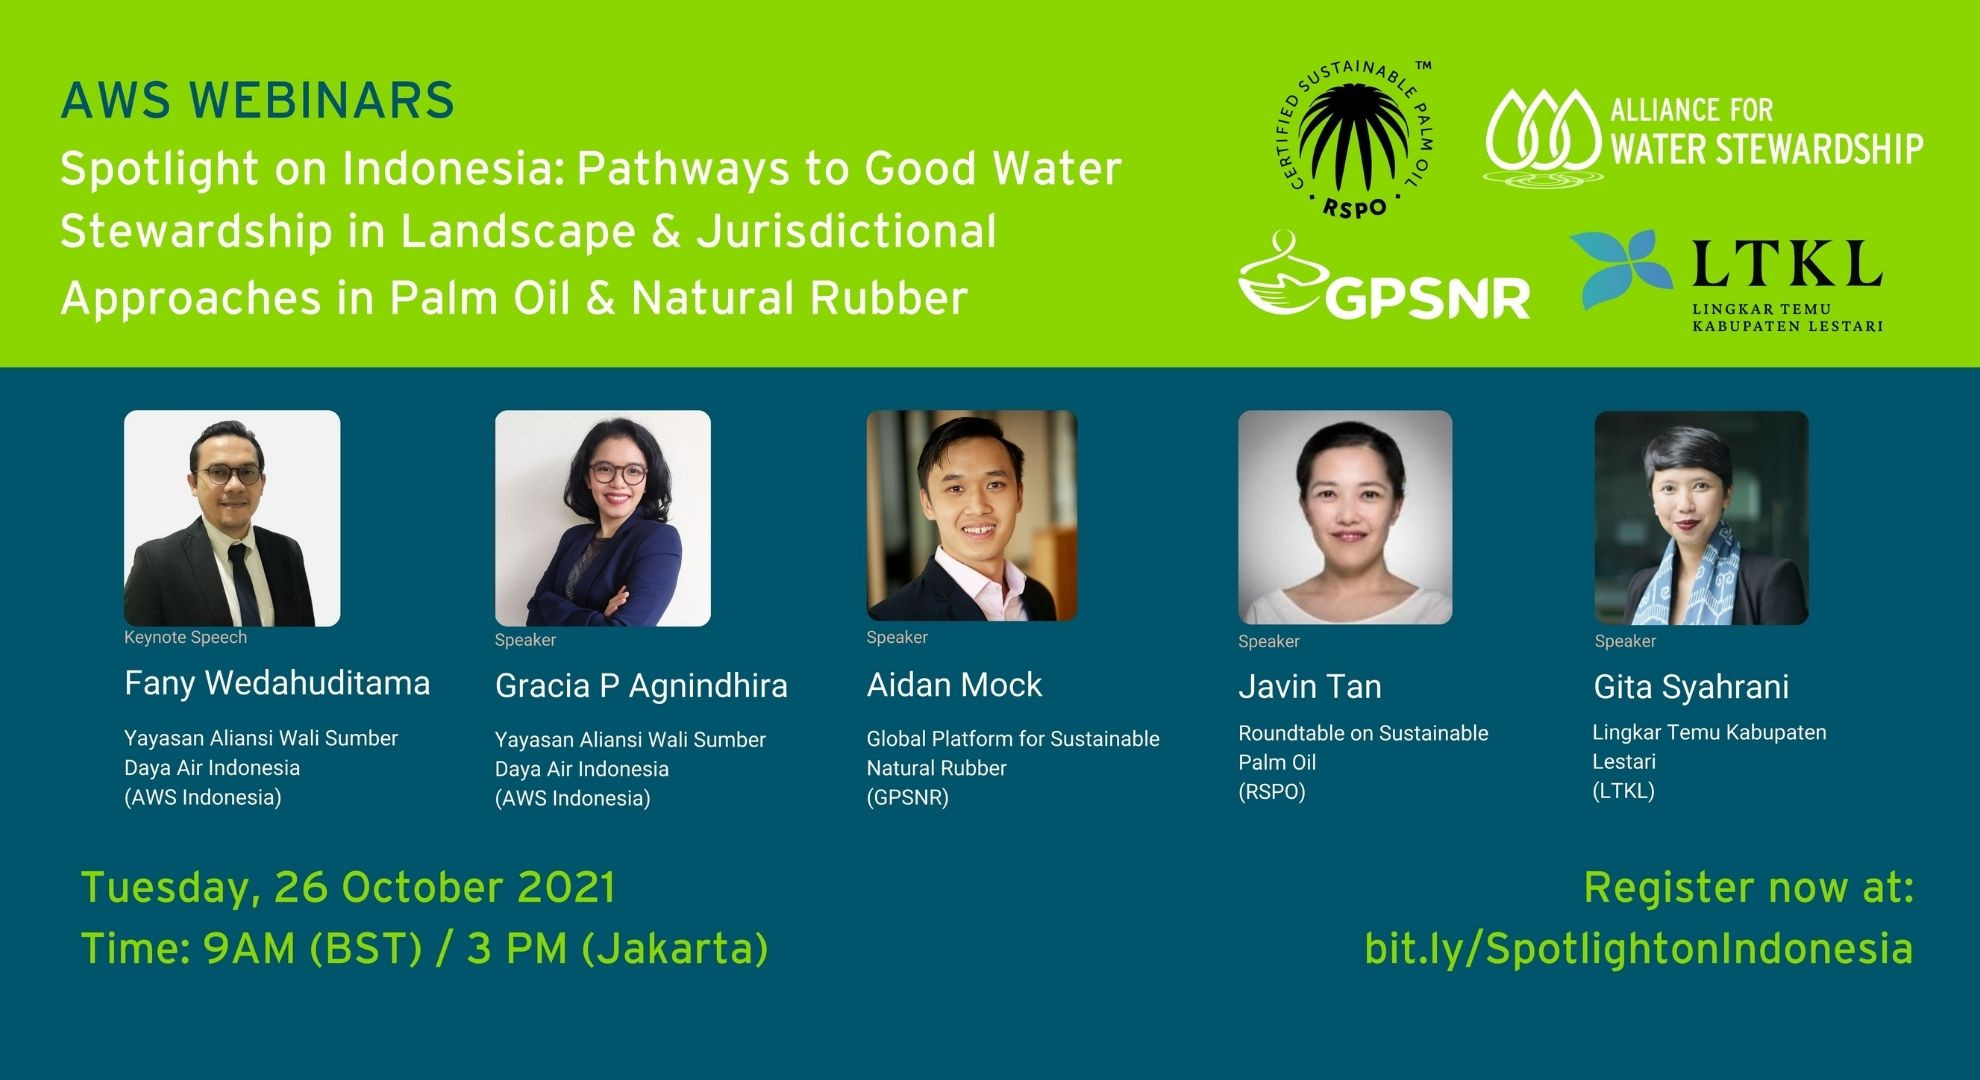 AWS Spotlight on Indonesia: Pathways to Good Water Stewardship in Landscape & Jurisdictional Approaches in Palm Oil & Natural Rubber